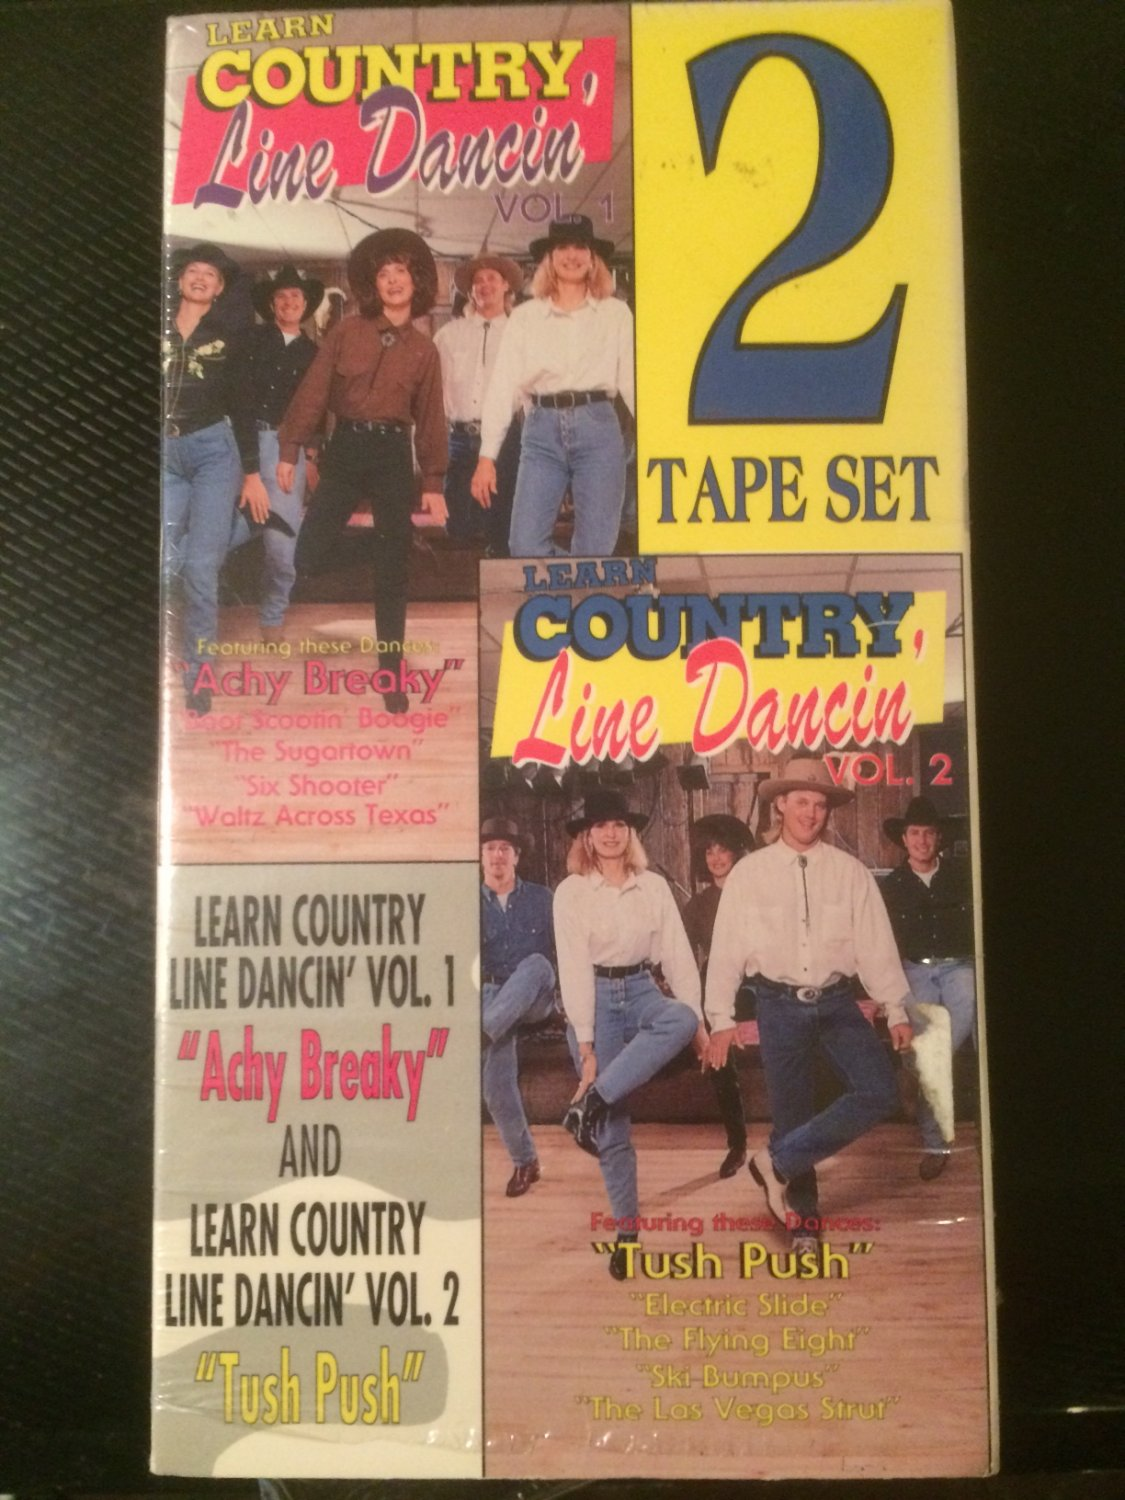 VHS - Learn Country Line Dancin', Vol. 1 & 2 (2 Tapes) - Used - NOT ON DVD!